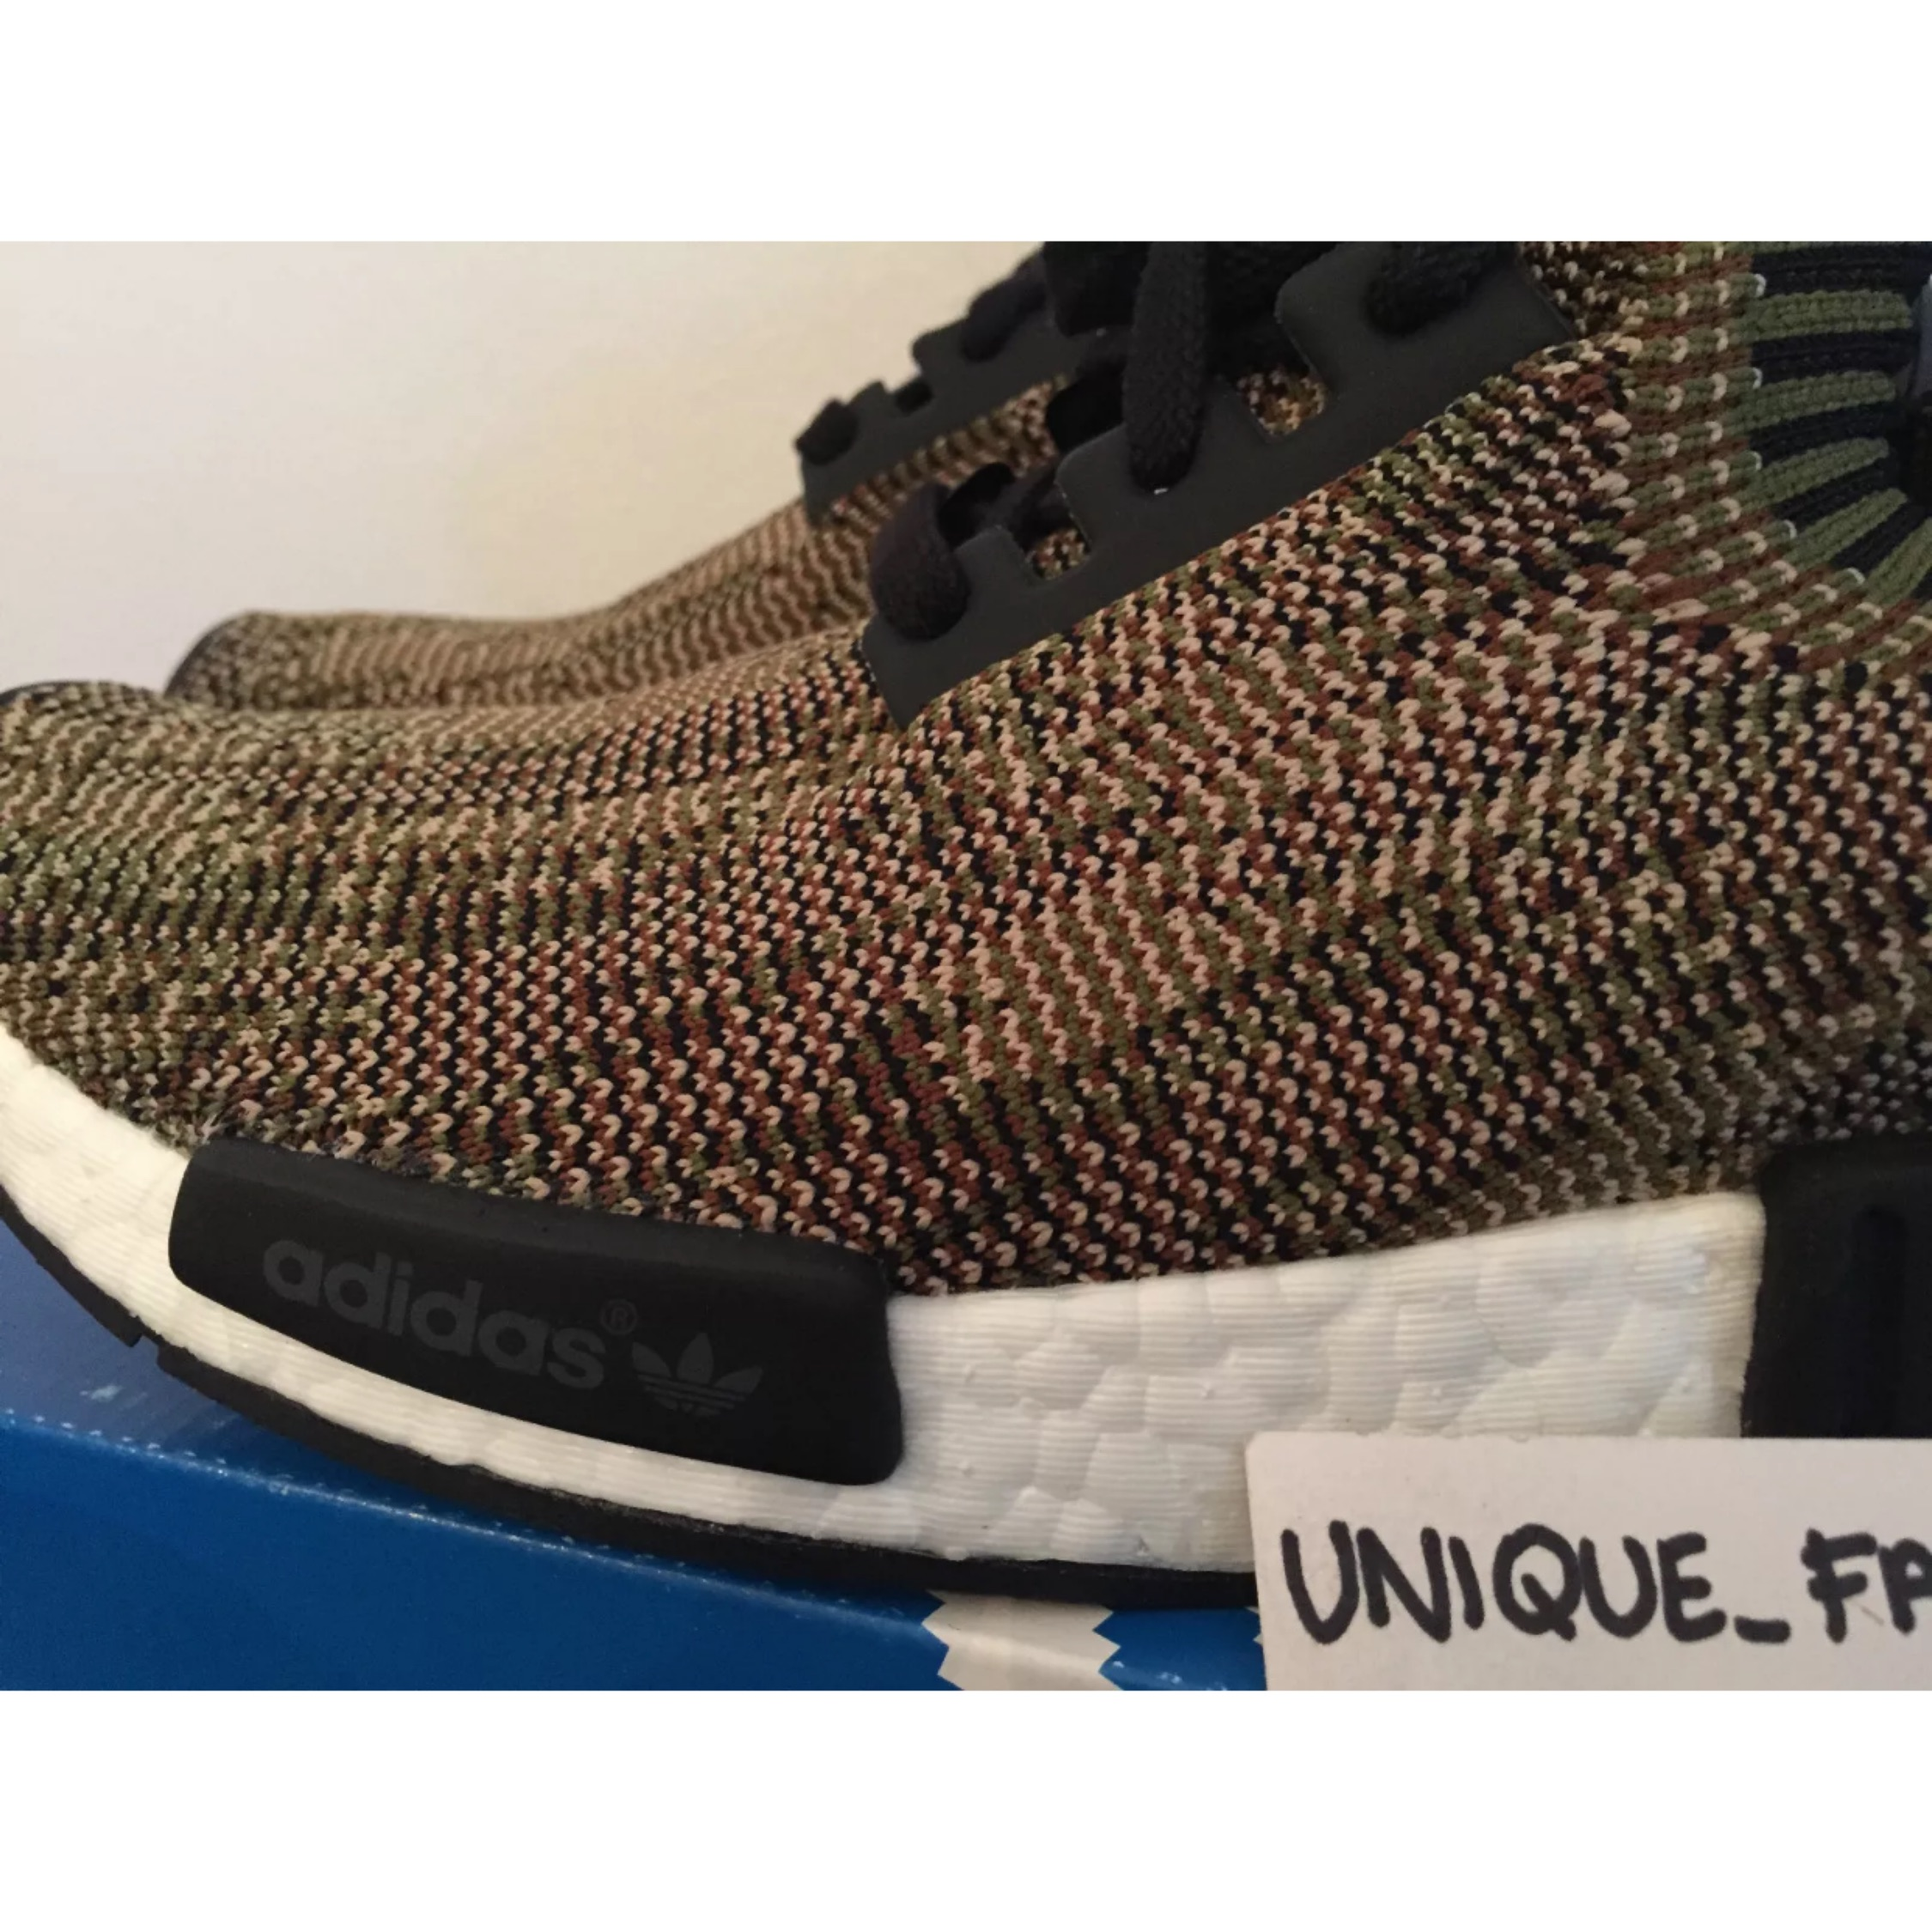 premium selection f6e7b 30aa4 Adidas Nmd Runner R1 Glitch Camo Pack Olive